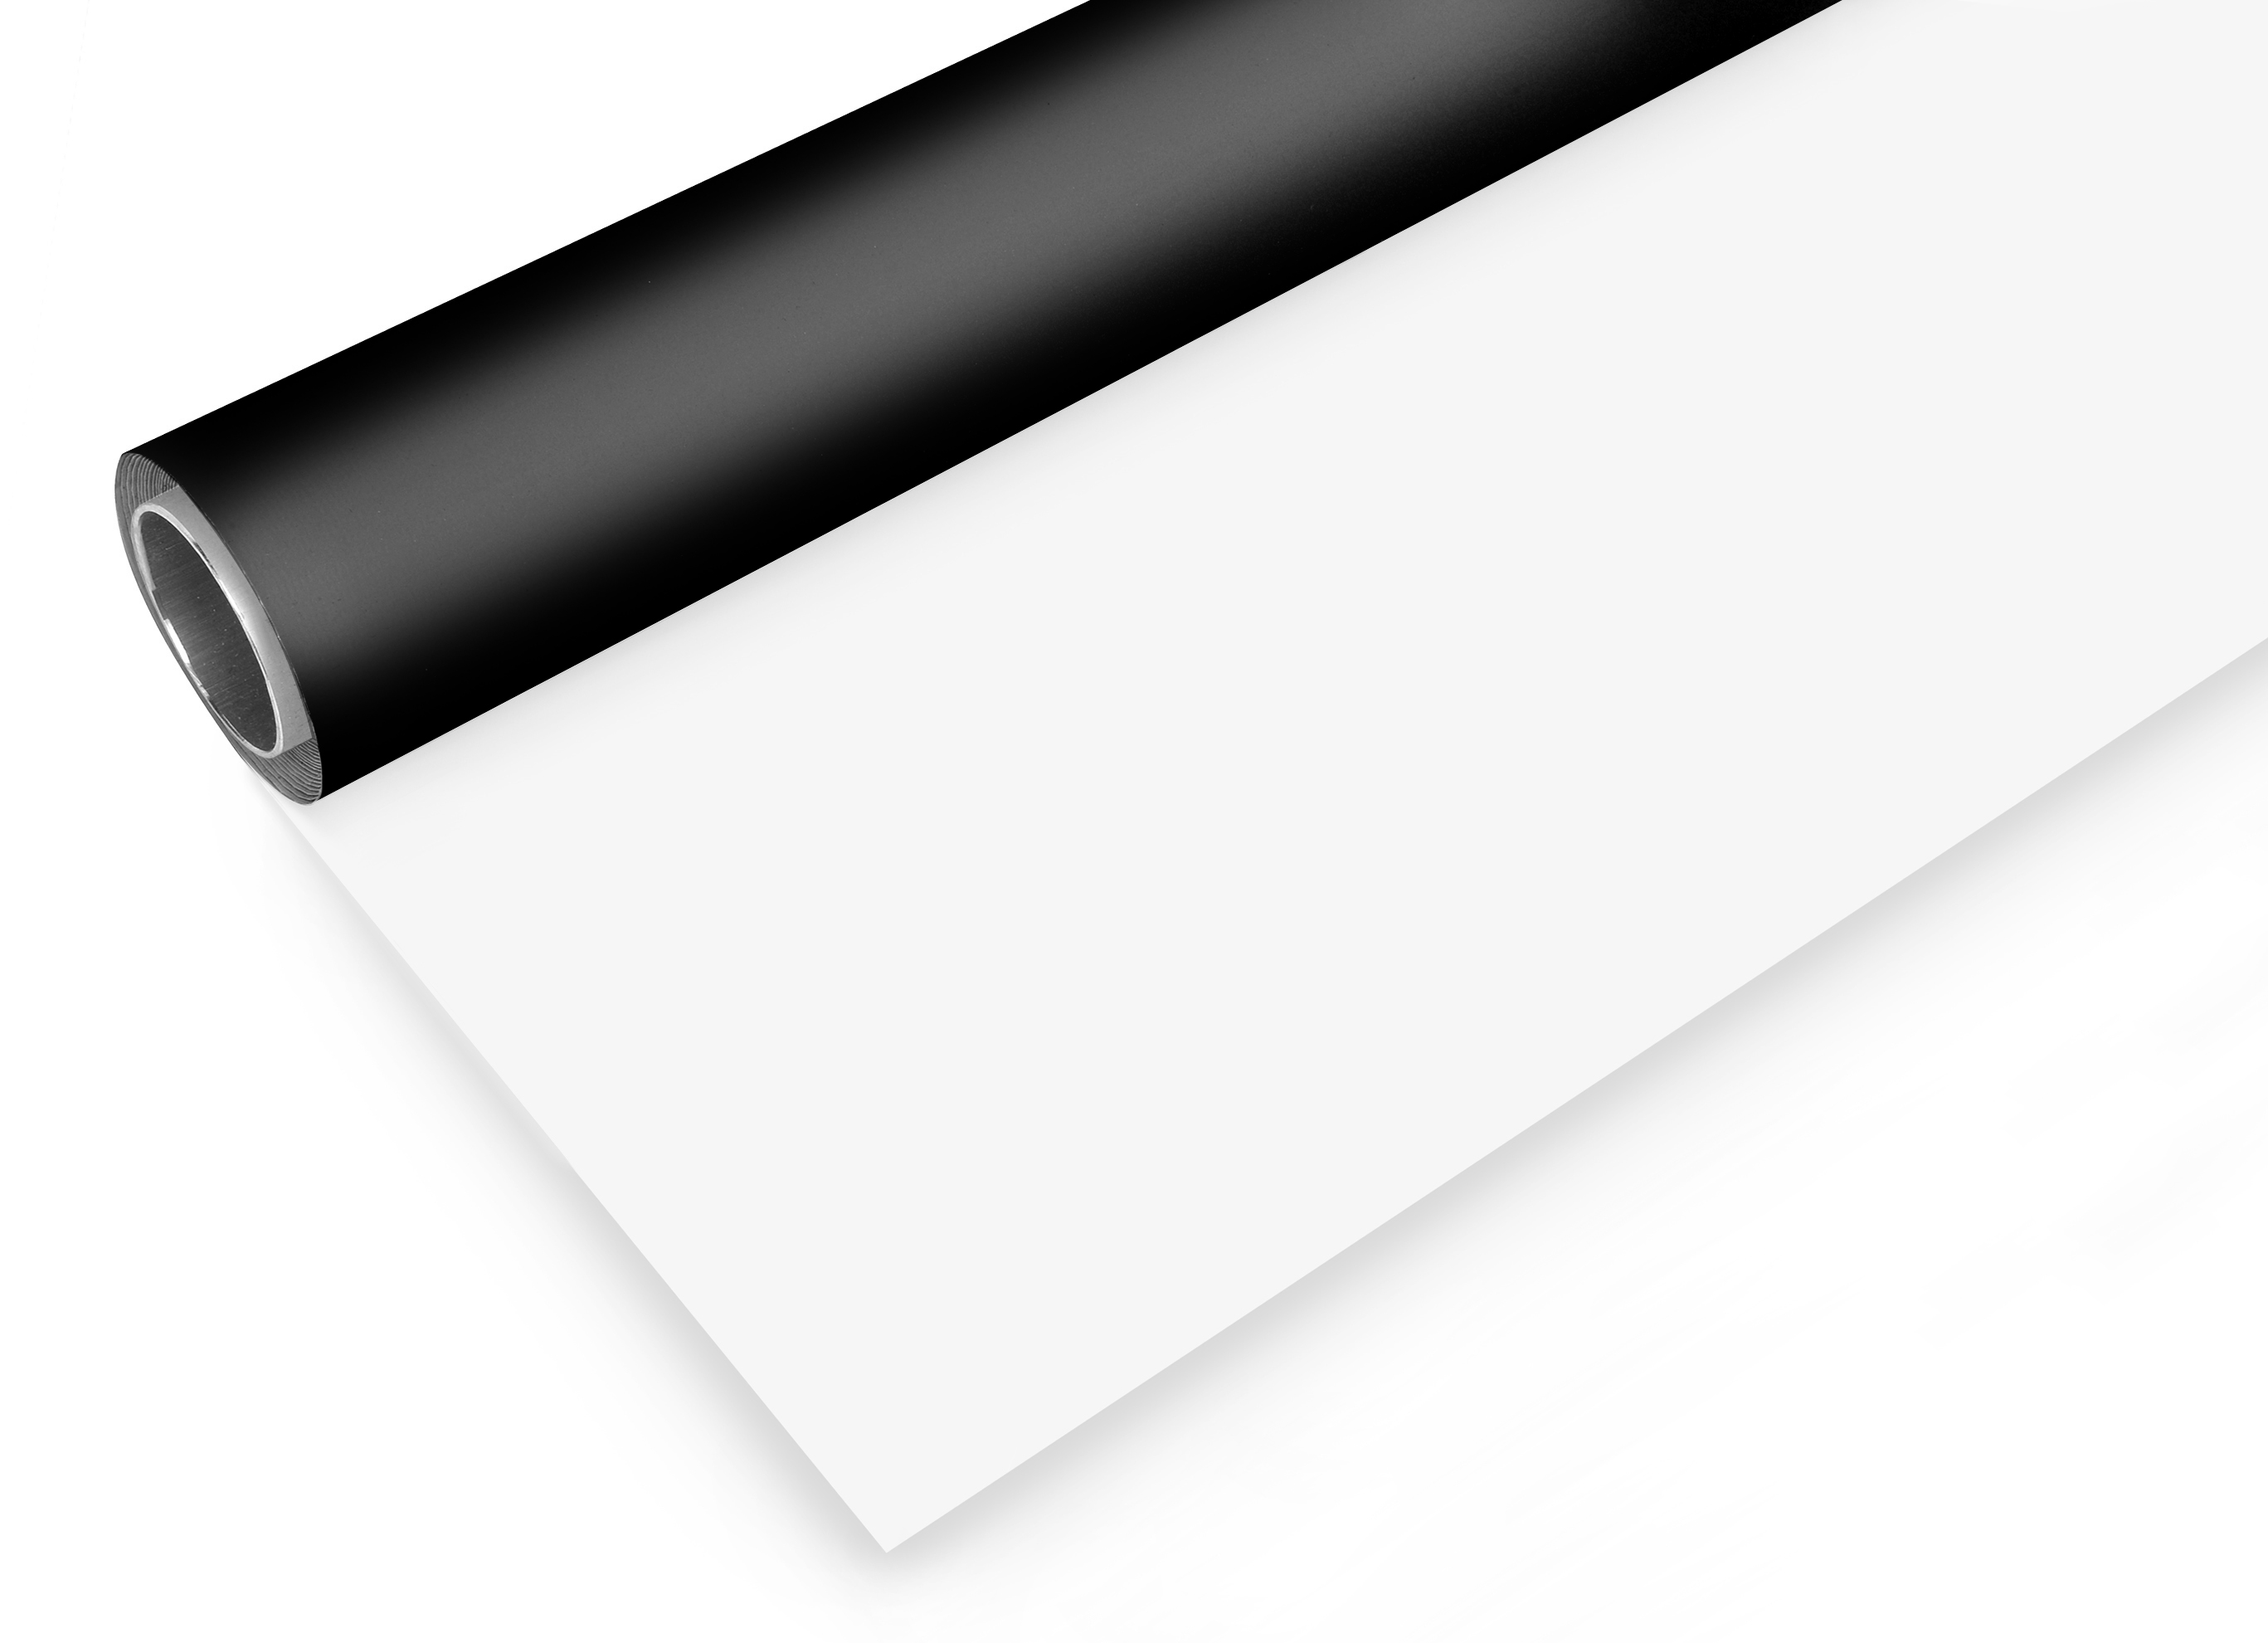 Bresser Vinyl Background Roll 2x6m Black White Bresser